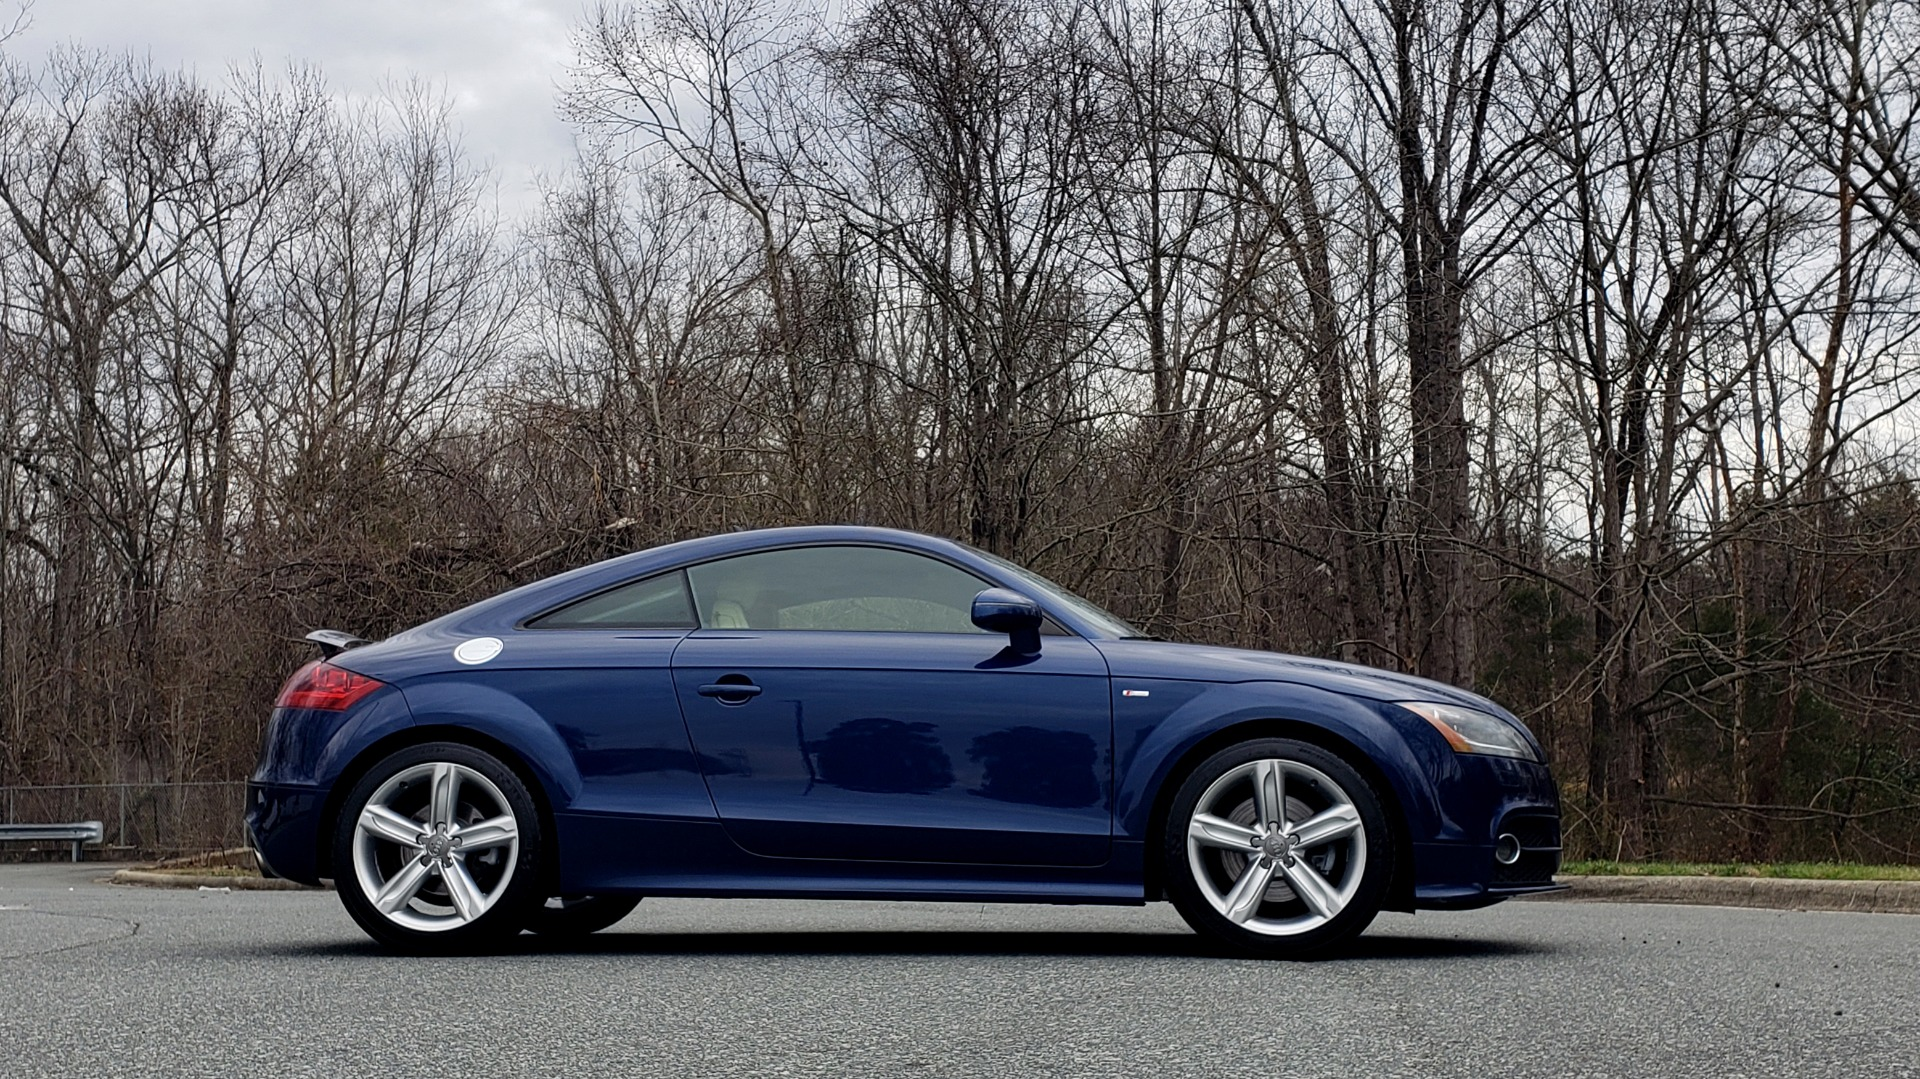 Used 2014 Audi TT 2.0T S-TRONIC / COUPE / AWD / LEATHER / HEATED SEATS for sale Sold at Formula Imports in Charlotte NC 28227 7